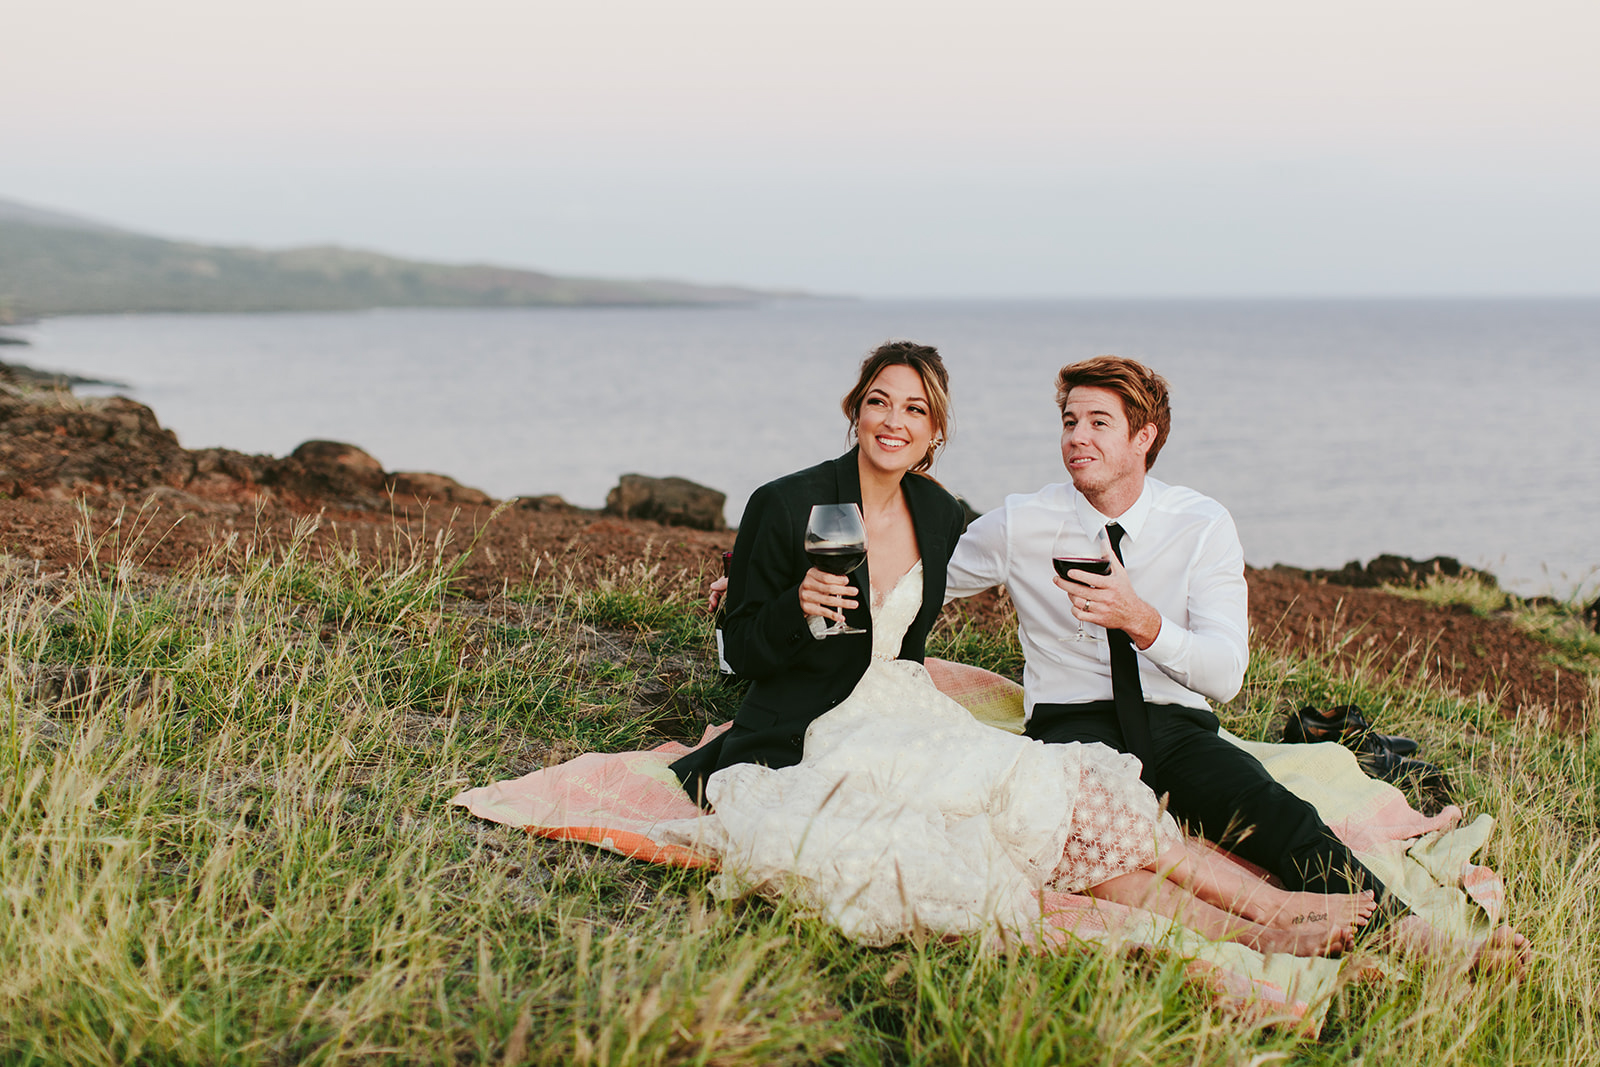 couple sitting on grass for wedding picnic